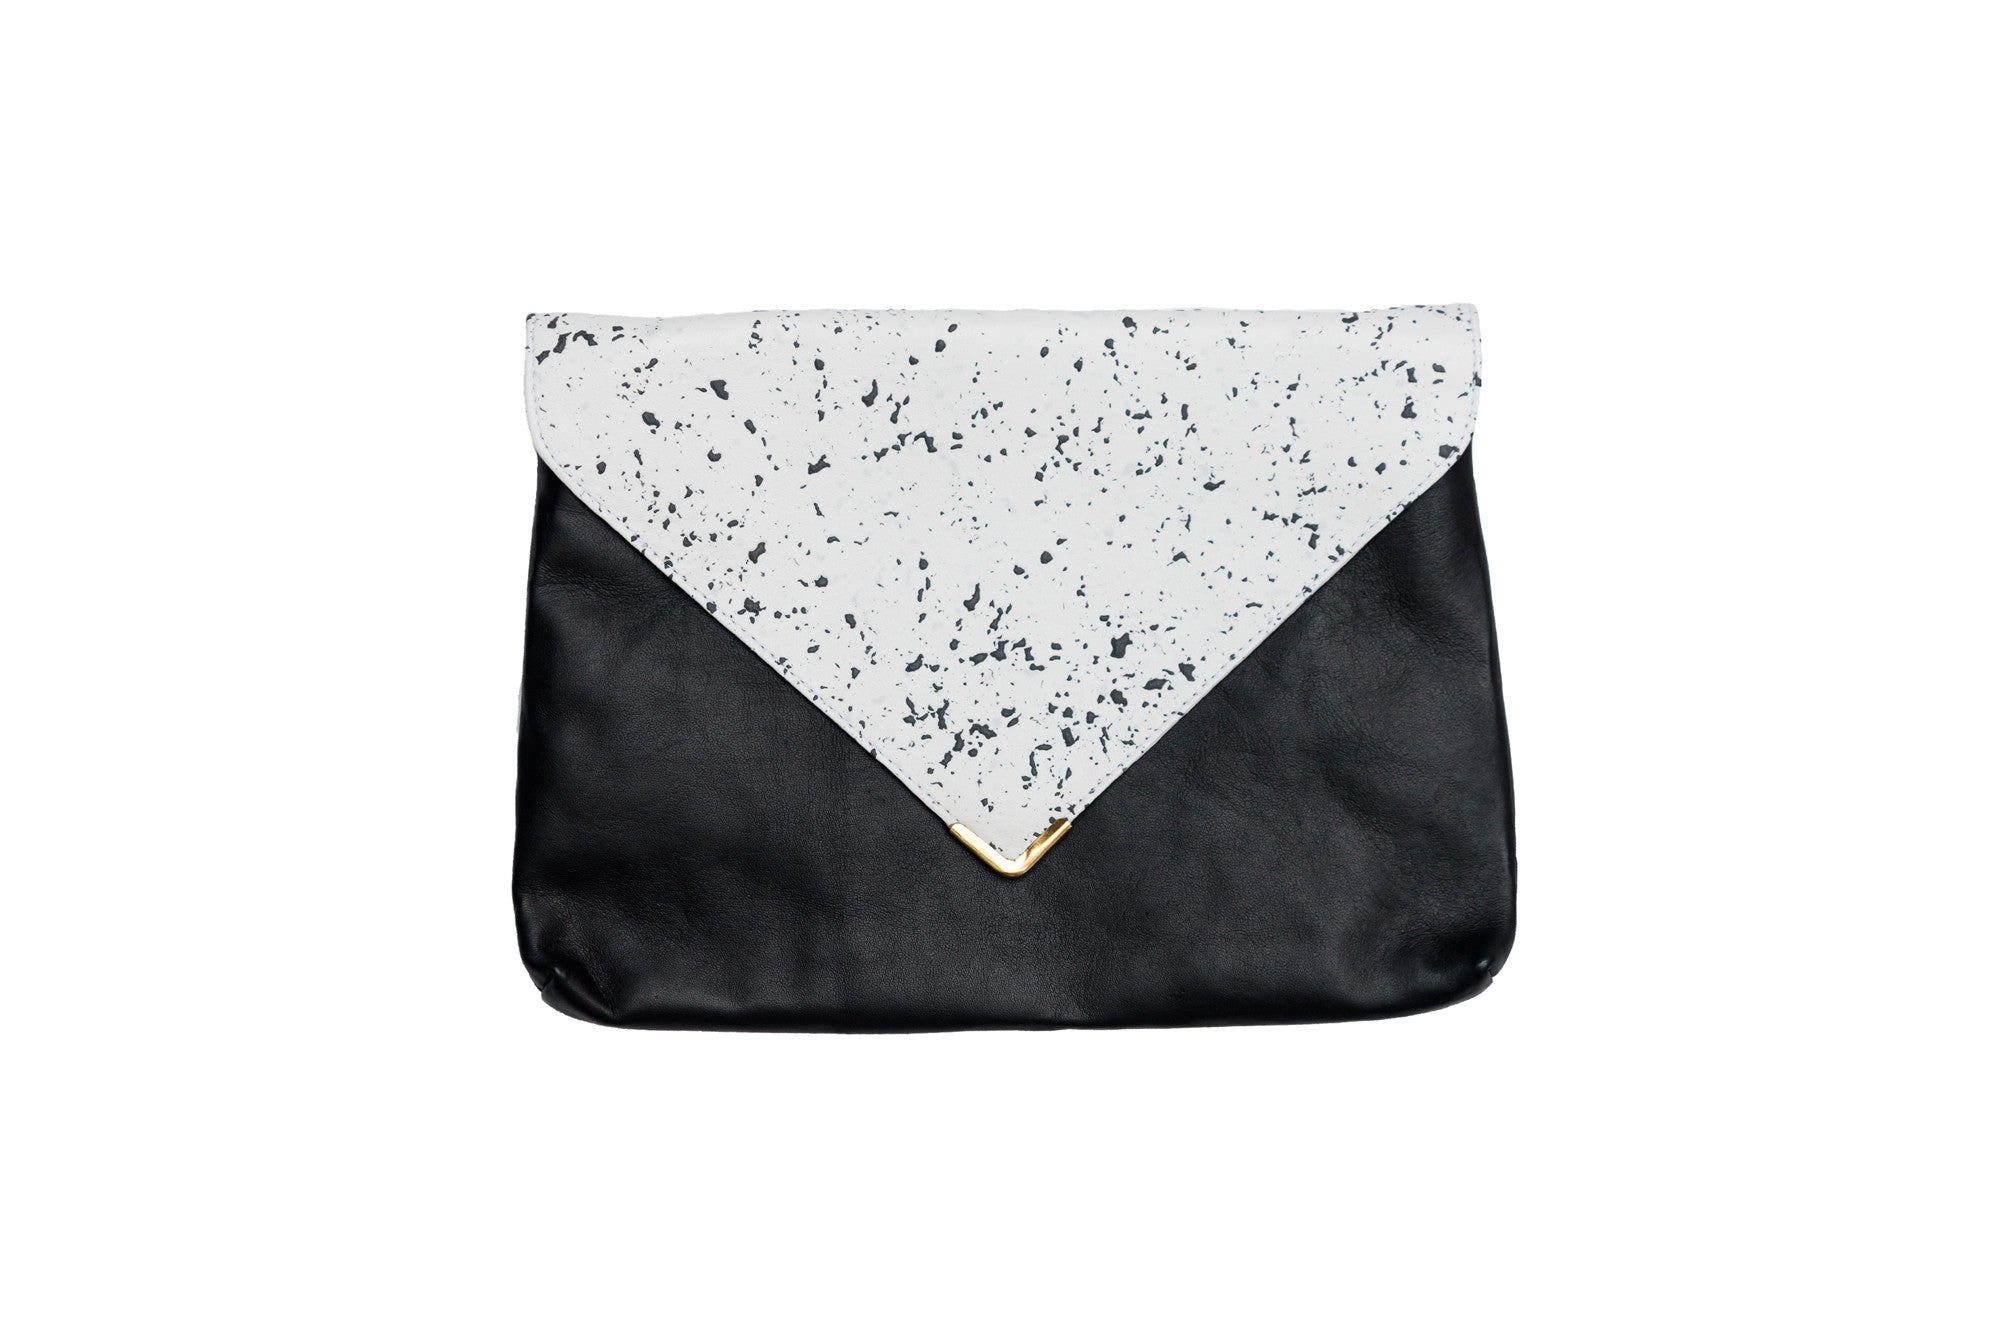 Black + White Speckled Leather Clutch